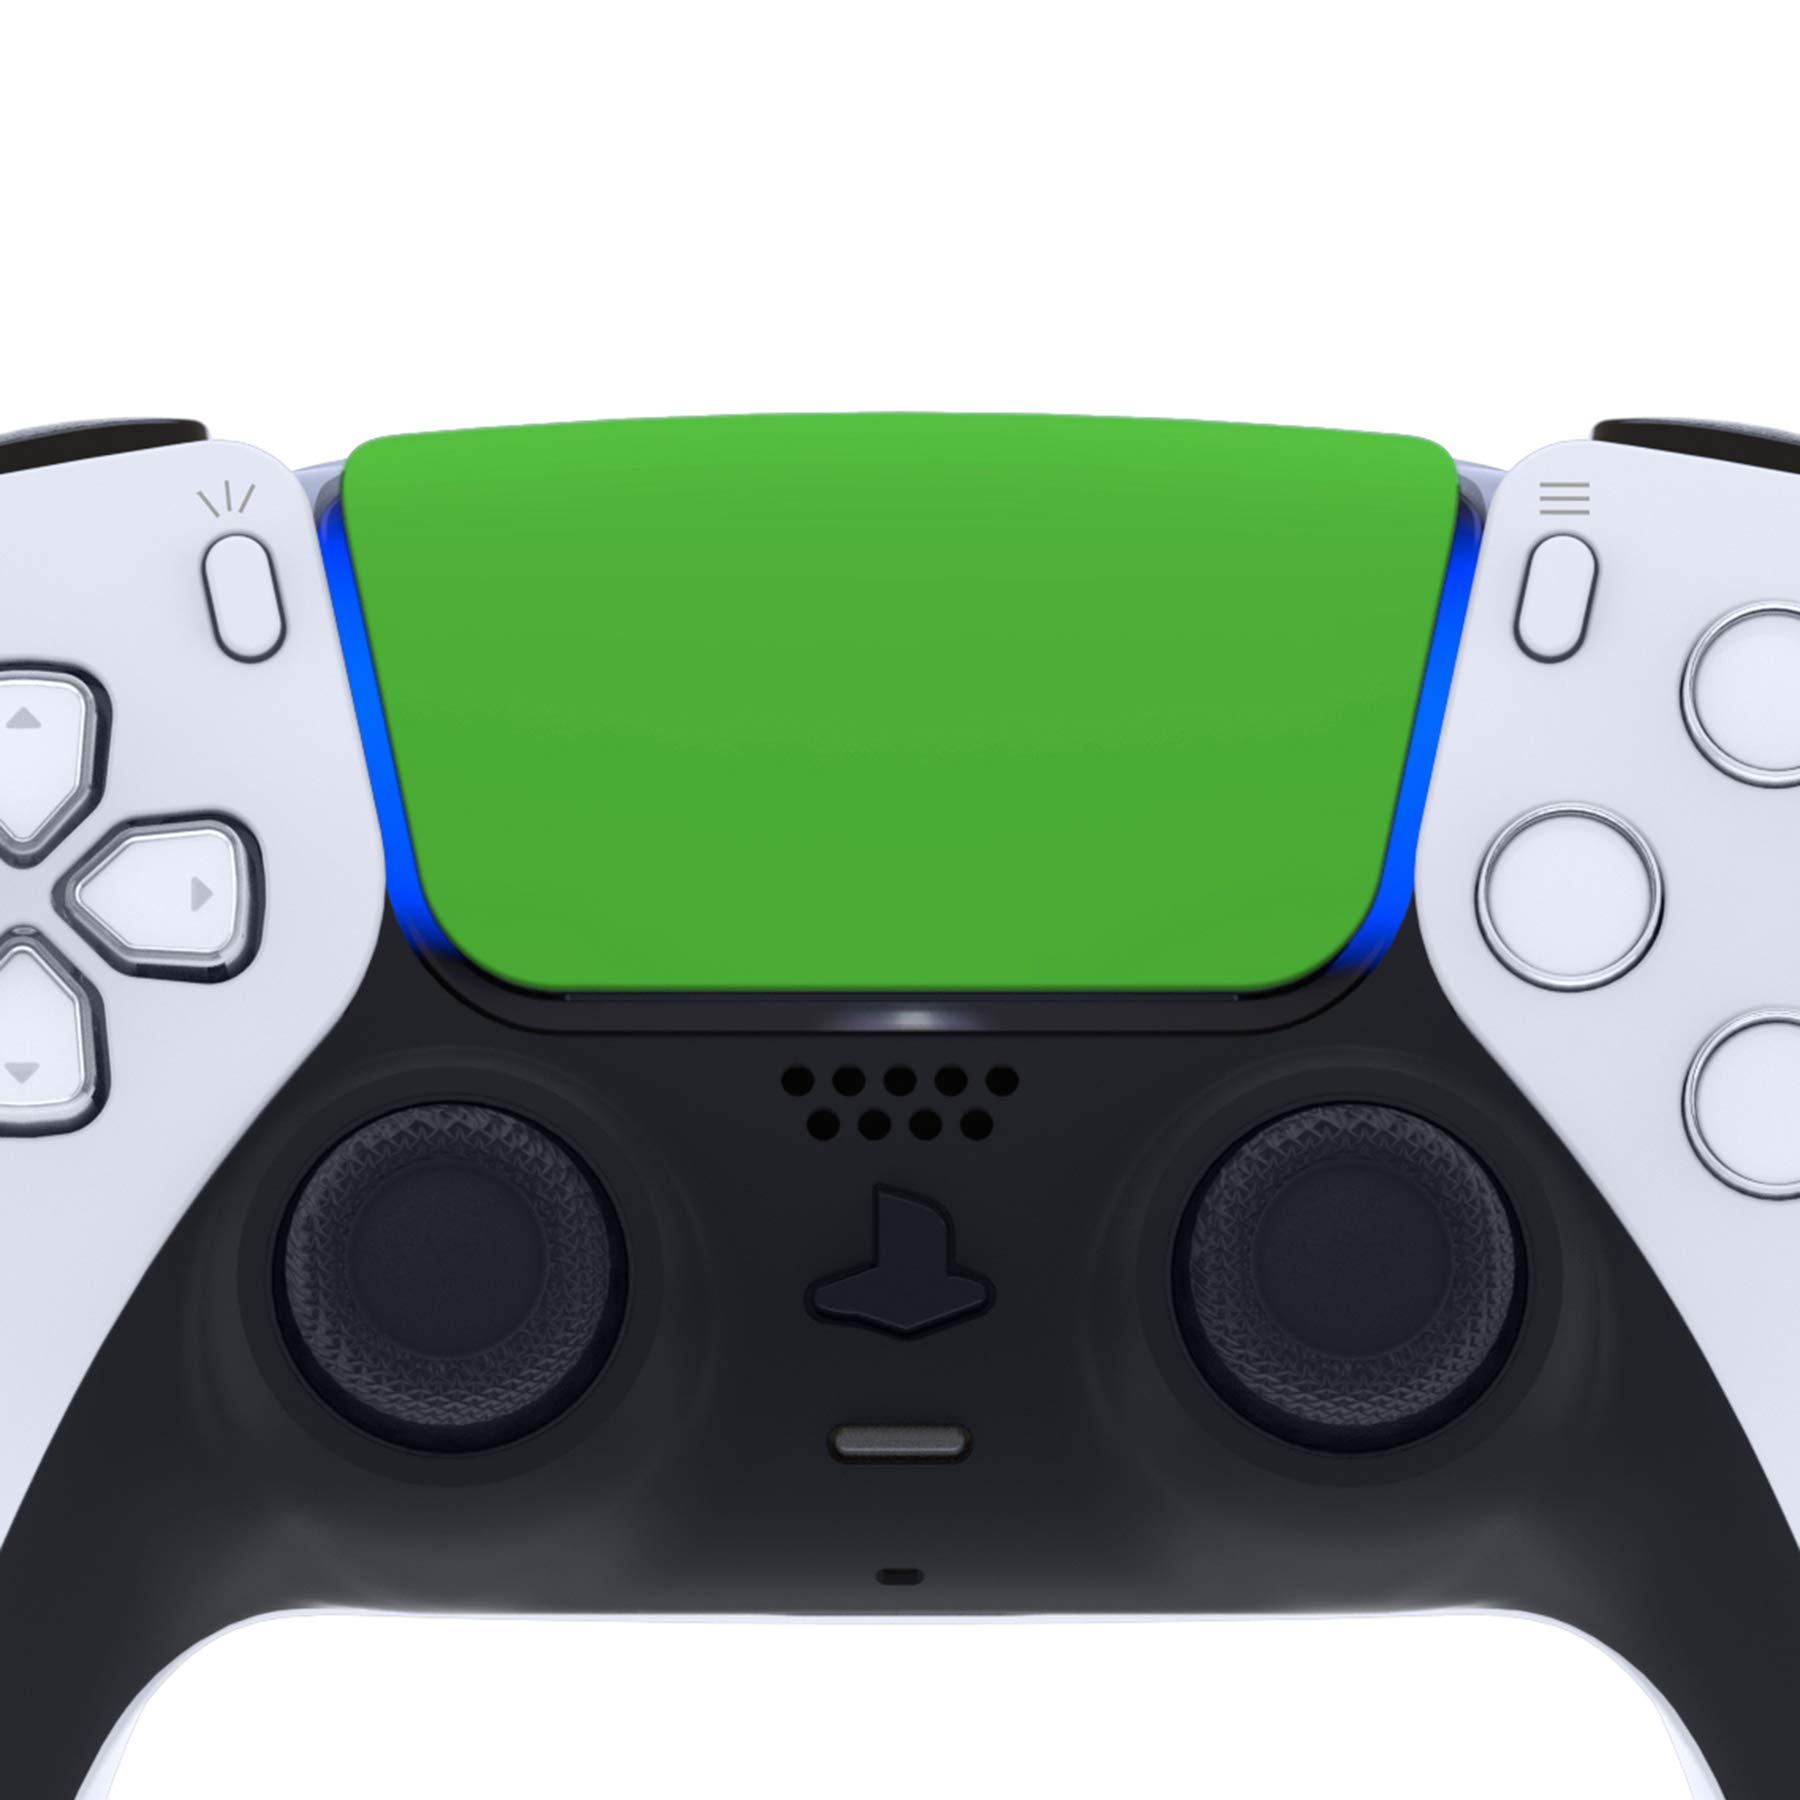 eXtremeRate Green Replacement Touchpad for PS5 Controller, Soft Touch Custom Part Touch Pad with Tool for DualSense 5 Controller - Controller NOT Included